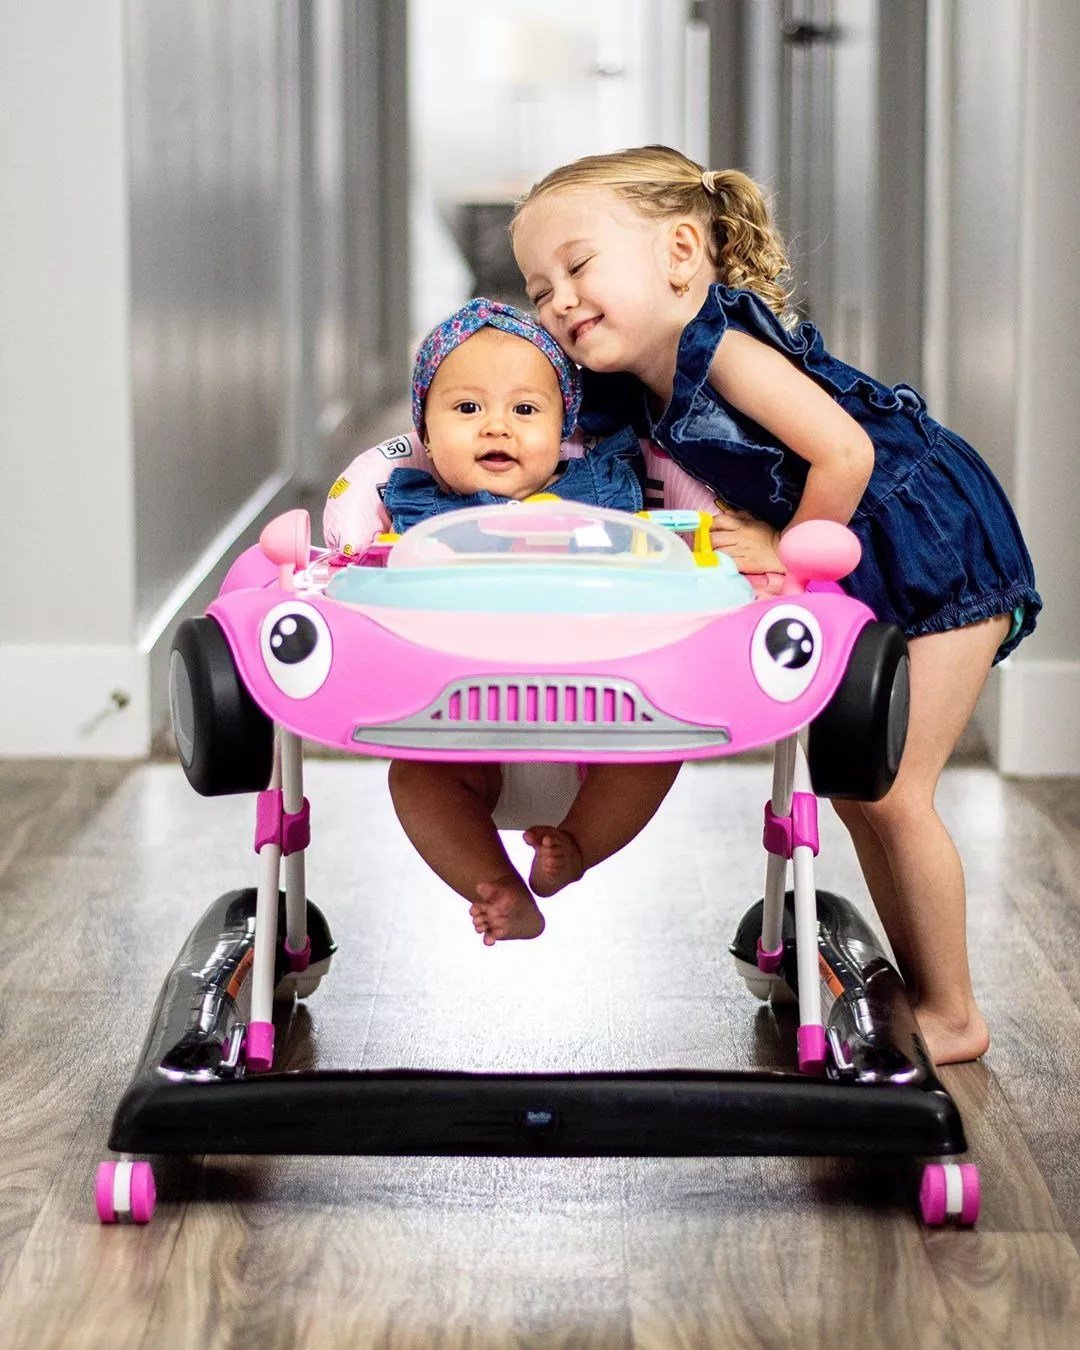 Baby in baby walker next to big sister. Photo by Instagram user @vivimccoy_